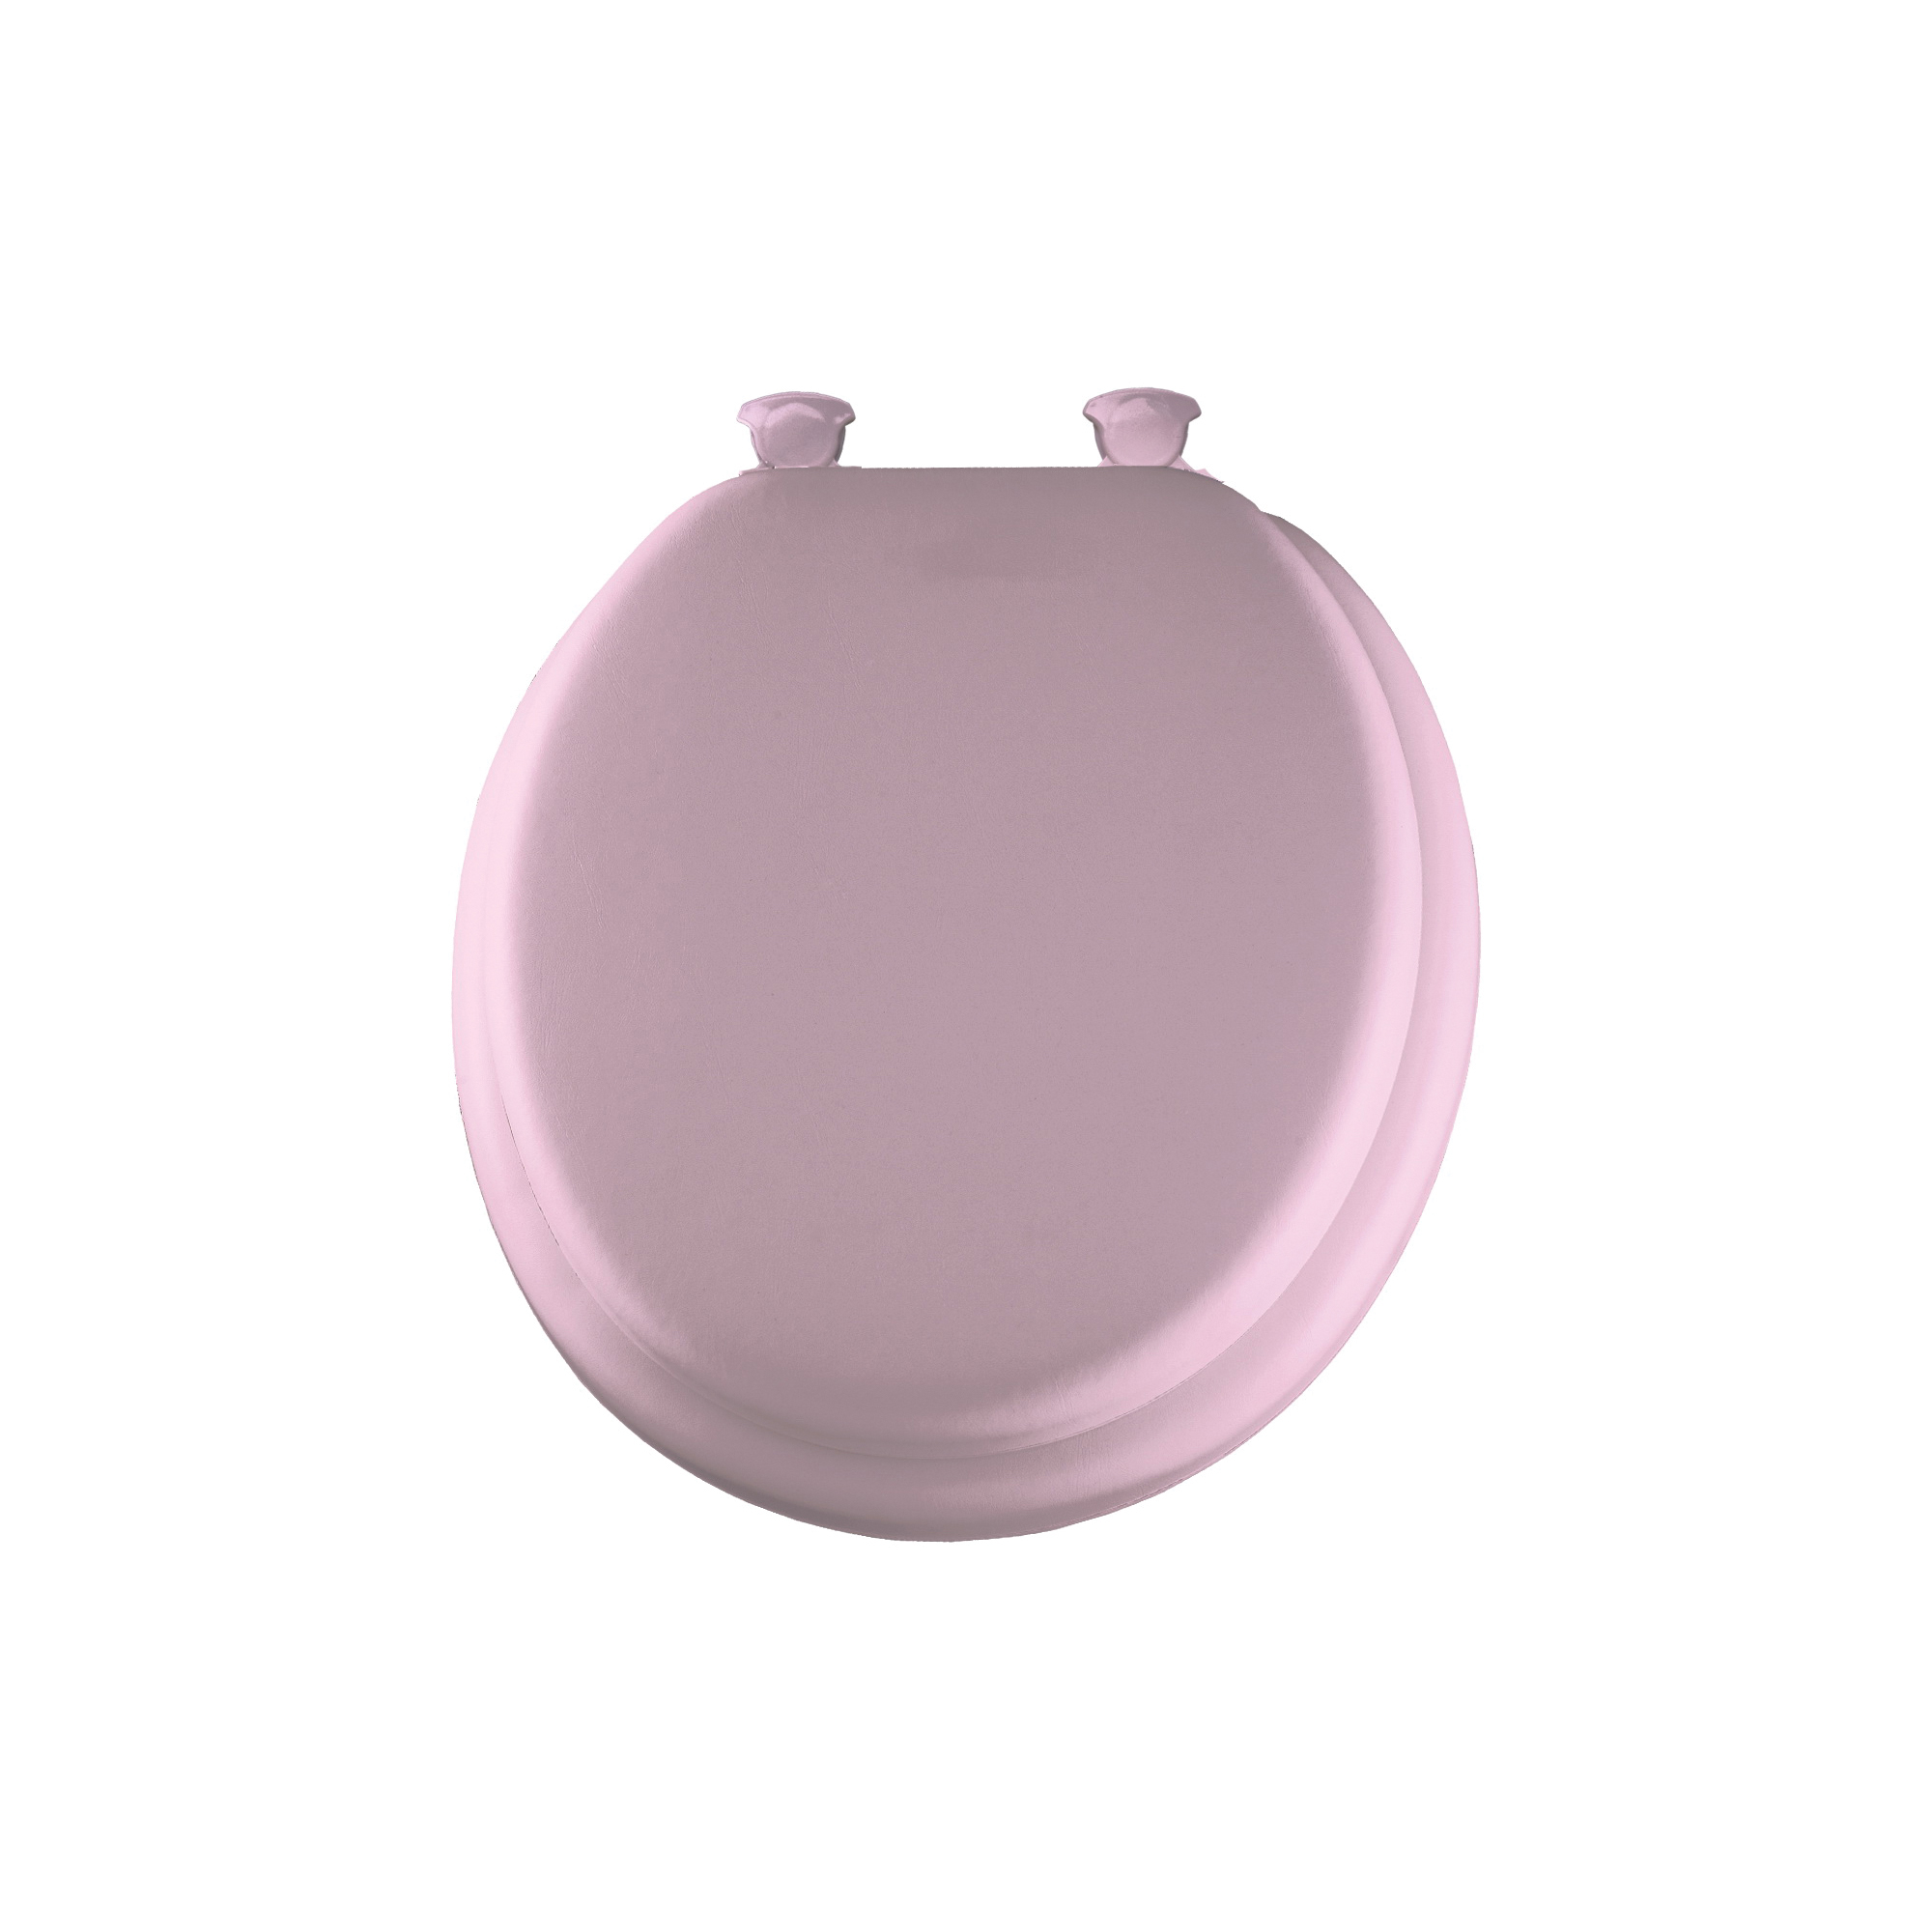 Mayfair® 13EC 023 Toilet Seat, Round Bowl, Closed Front, Wood, Easy Clean/Change® Hinge, Pink